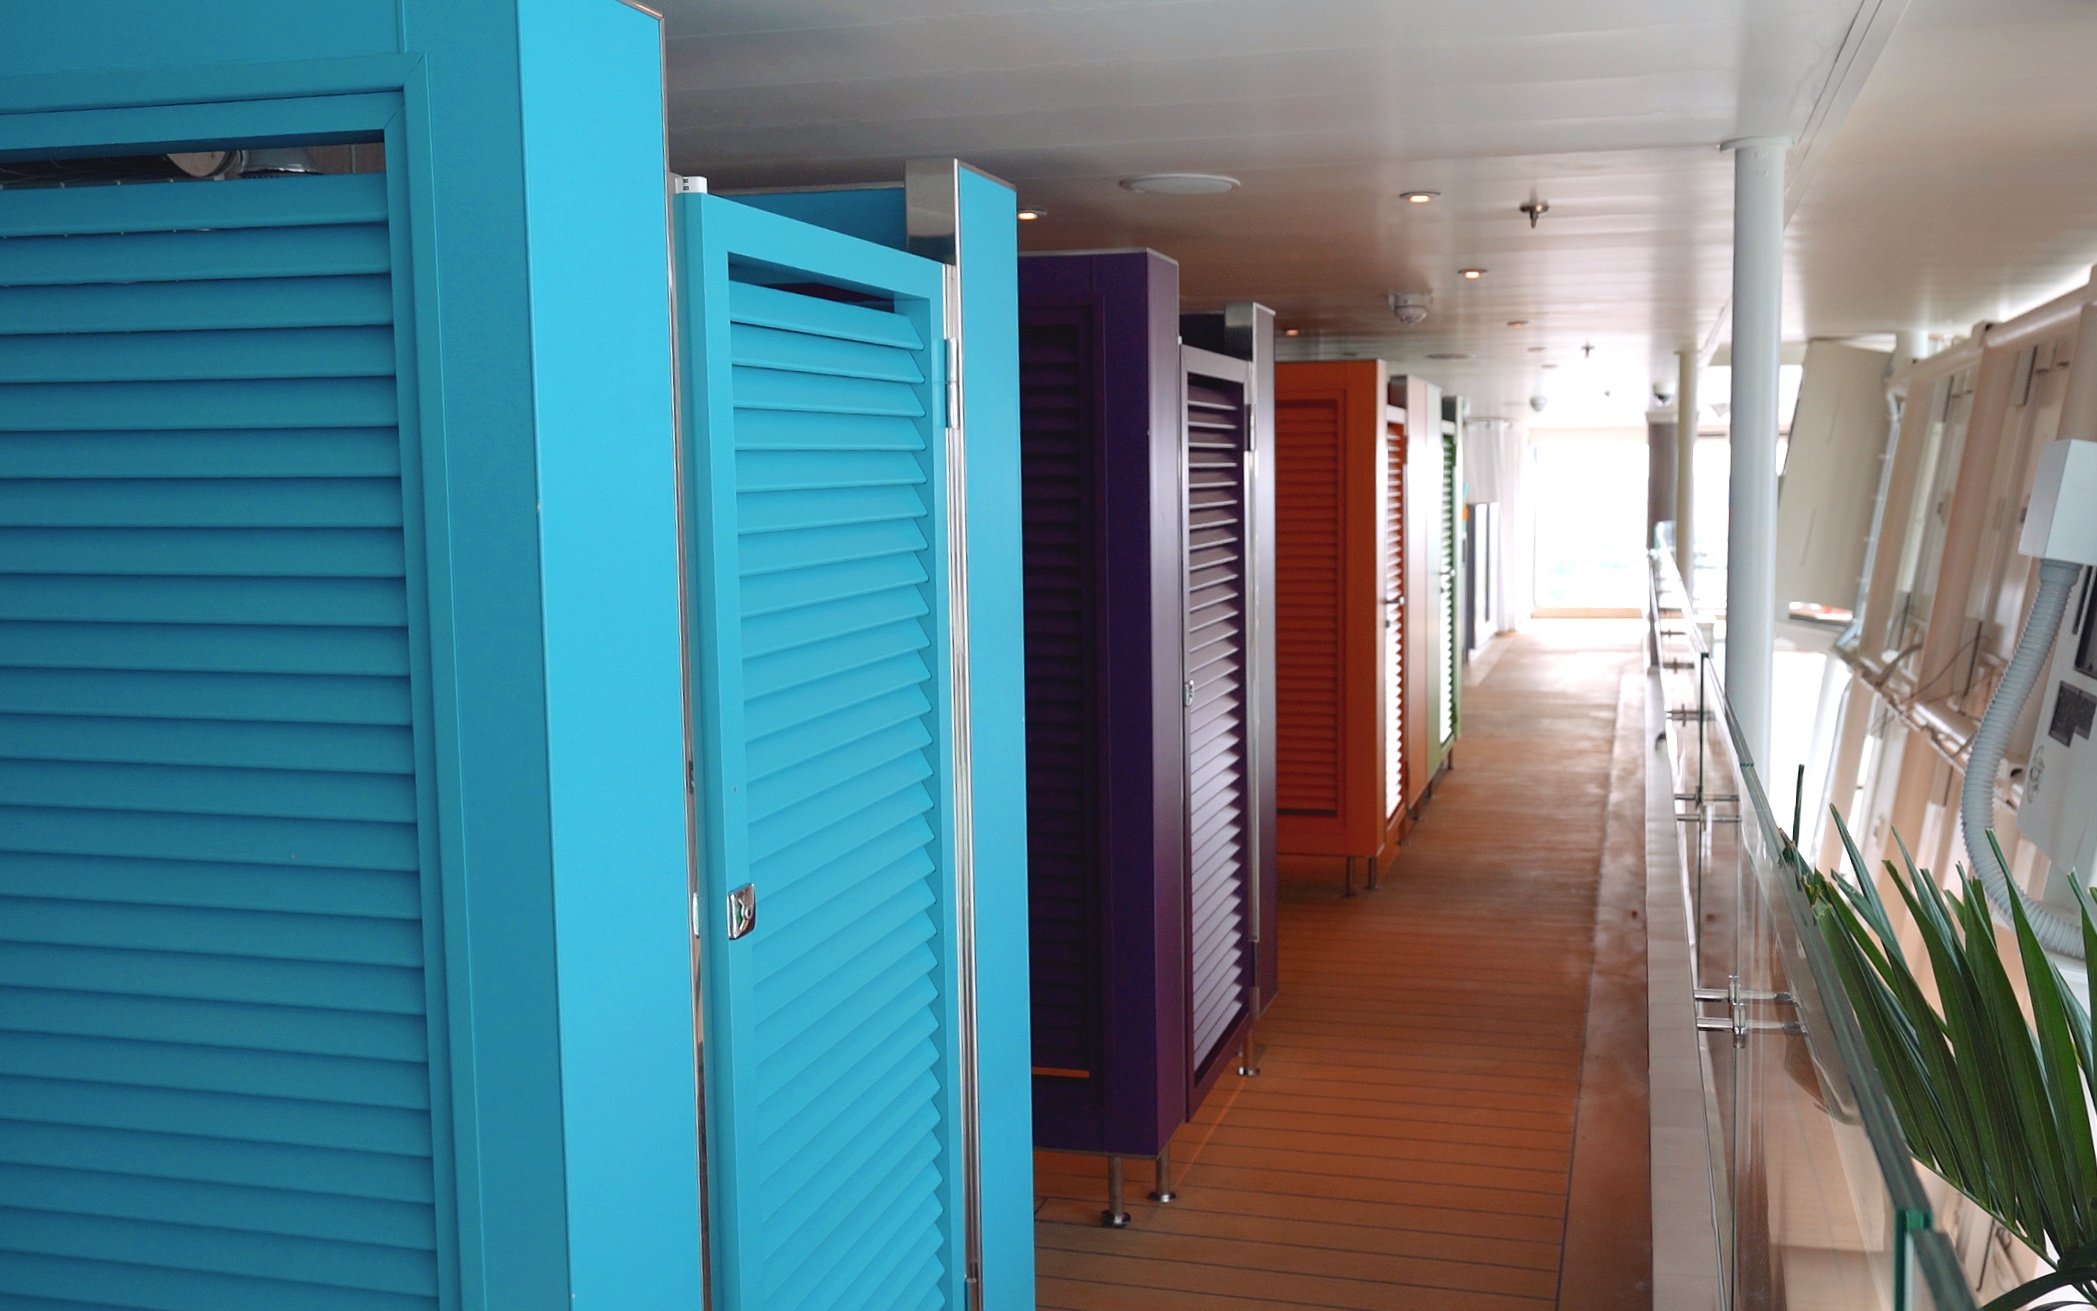 At one end of the pool we found these lovely individually coloured changing cubicles, complete with shower in each.